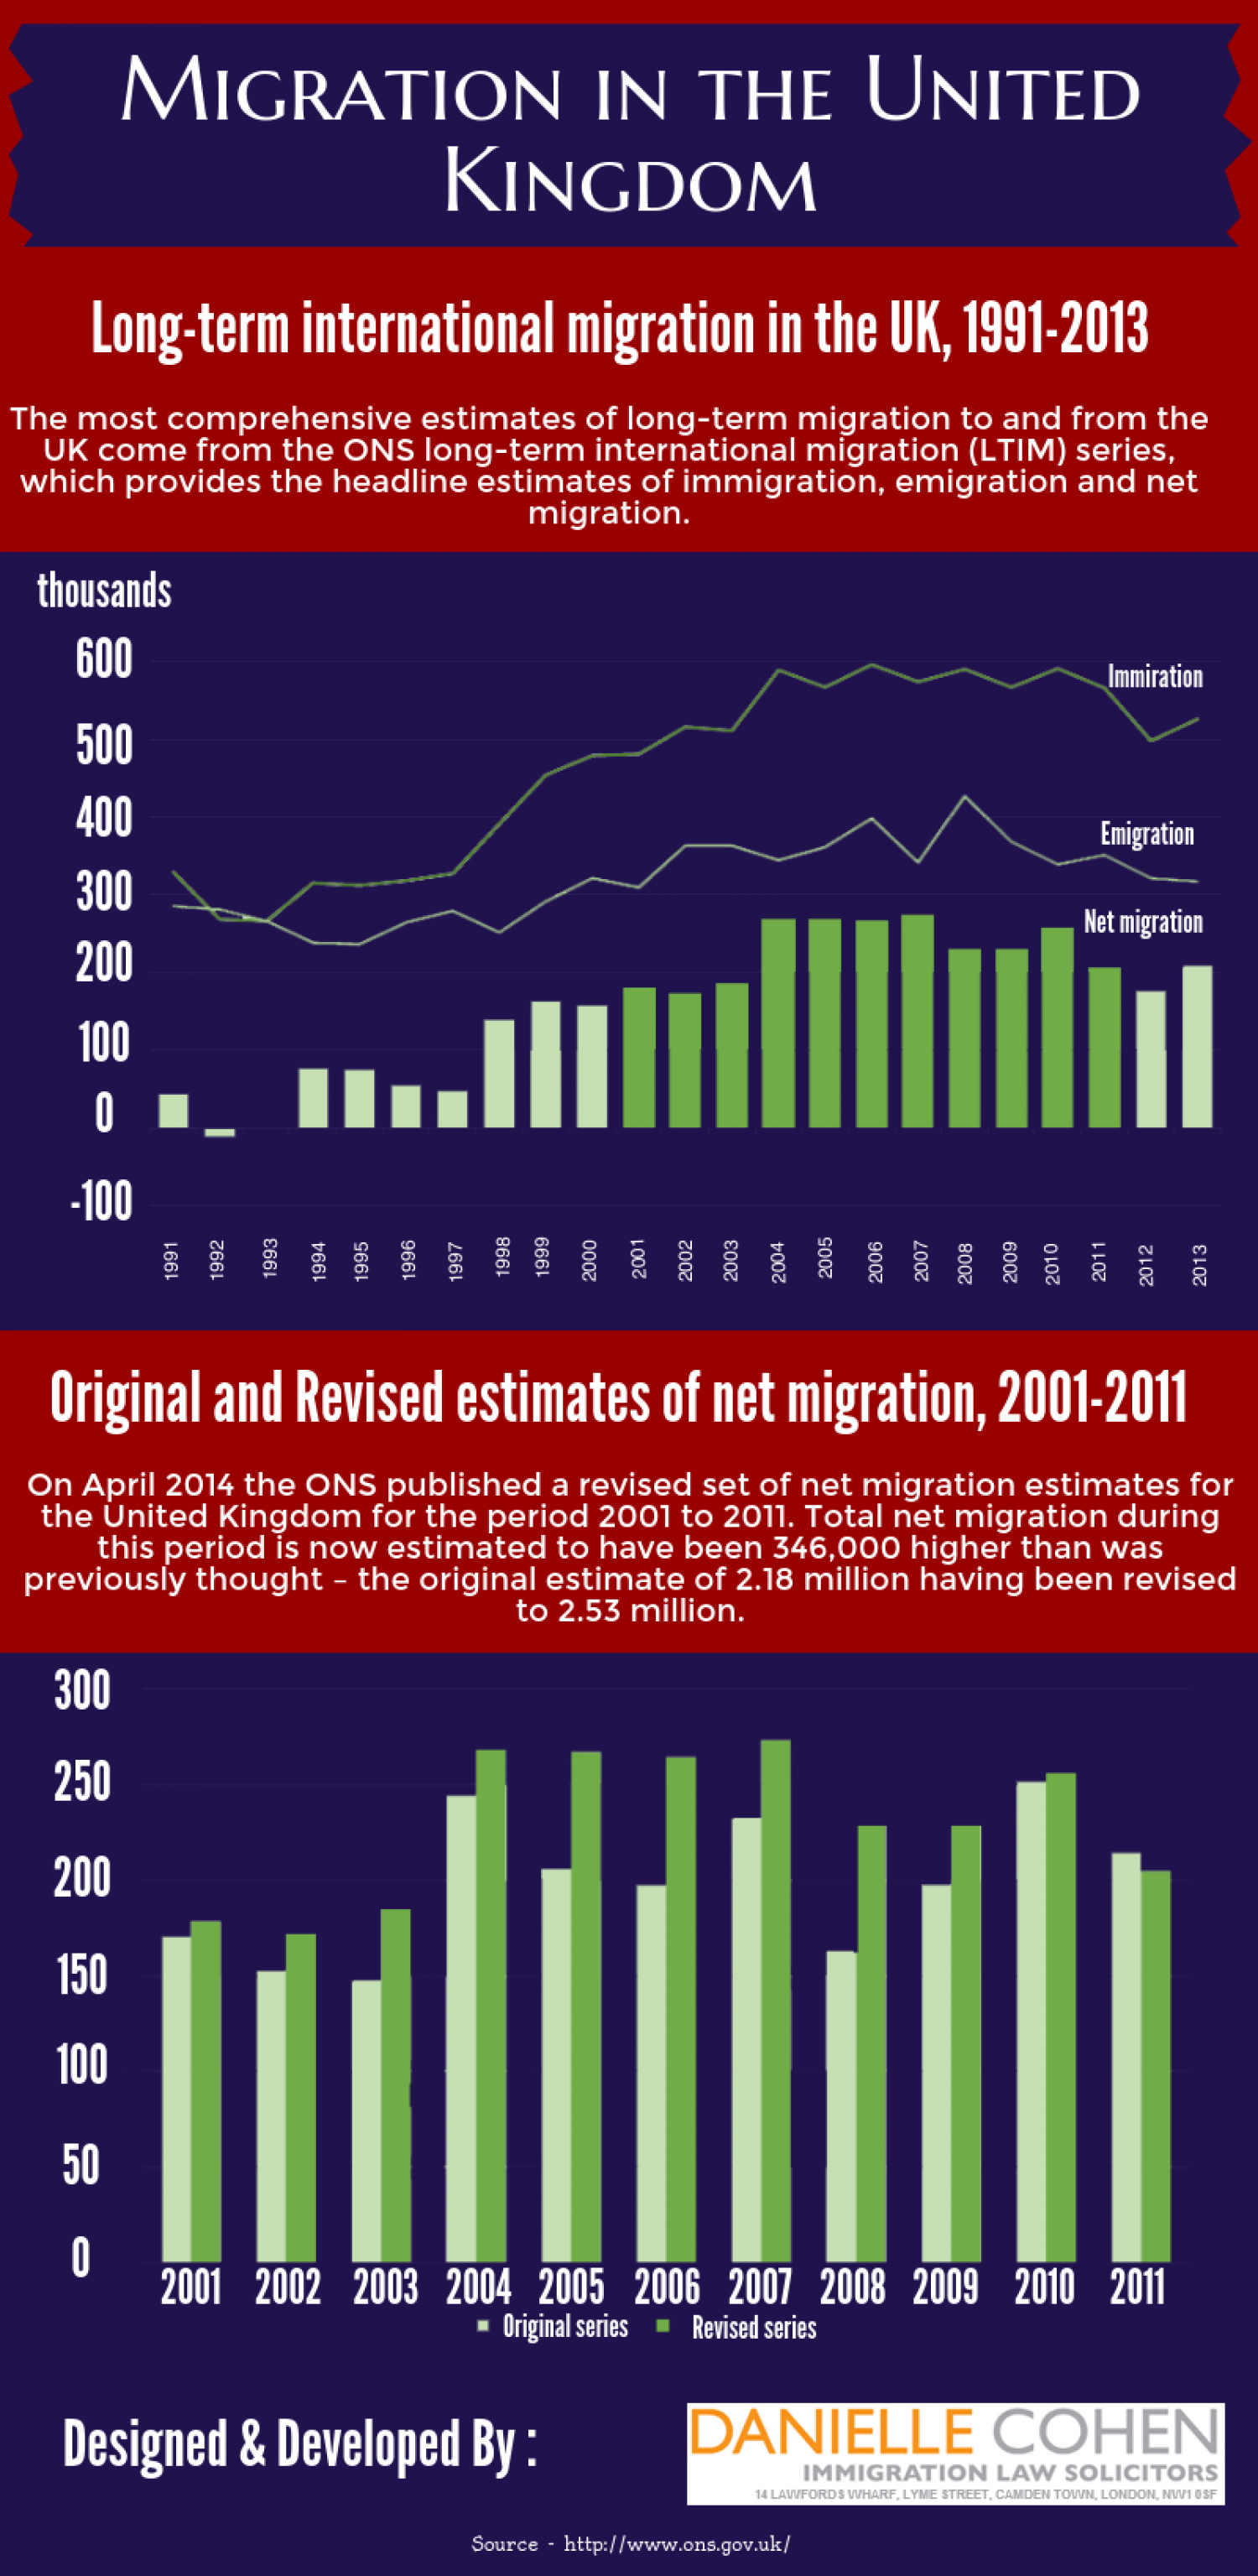 Migration in the United Kingdom Infographic